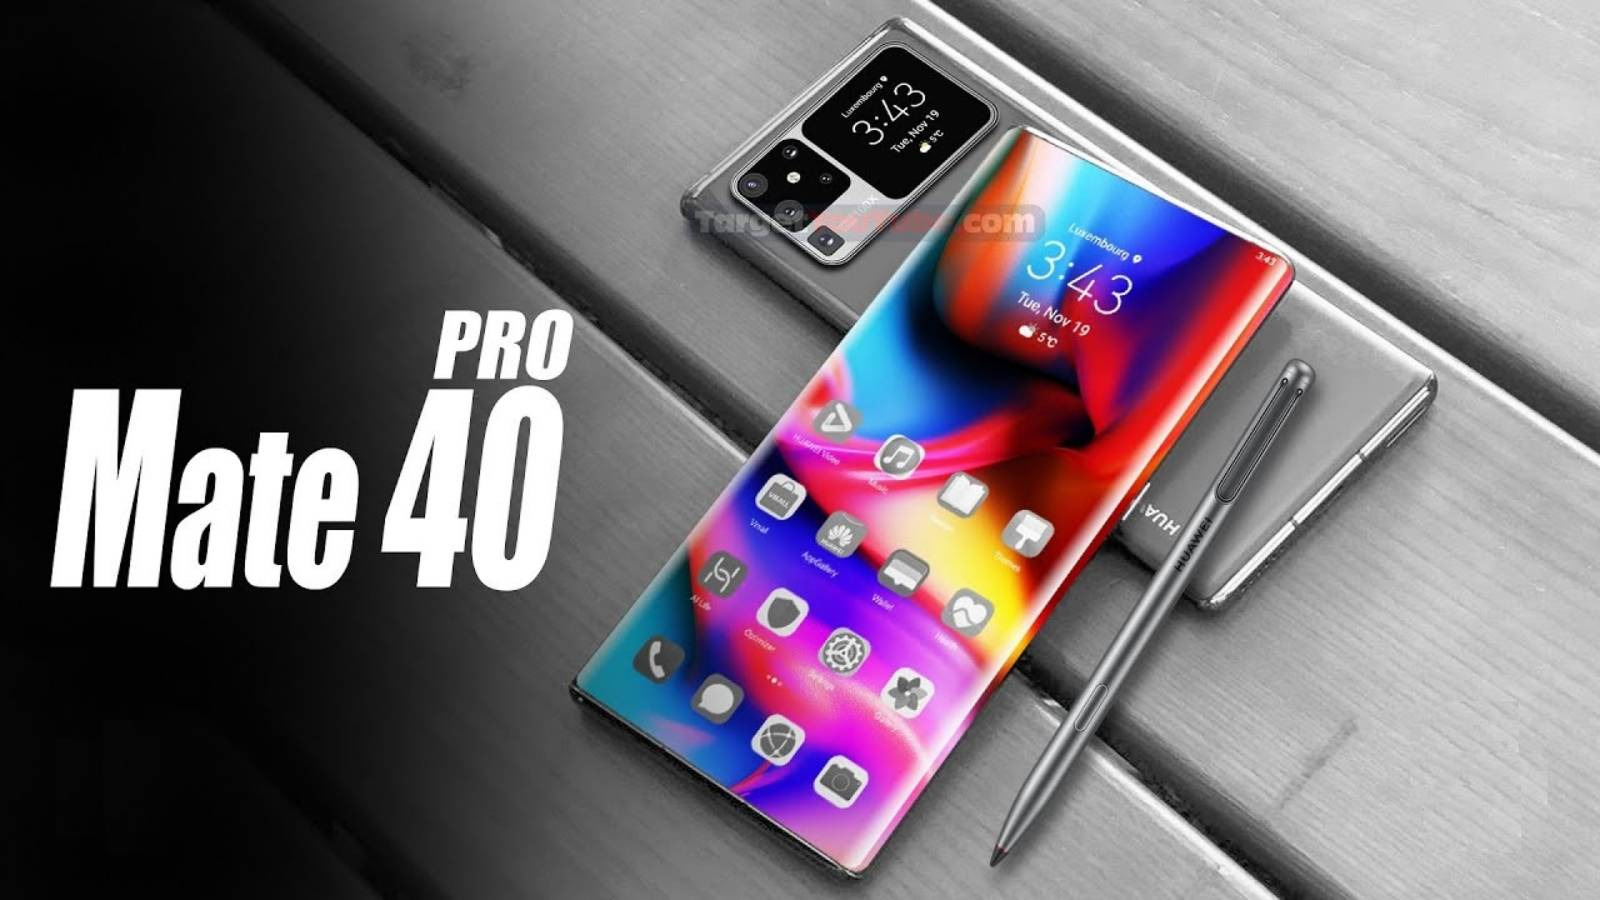 Huawei MATE 40 Pro ascundere